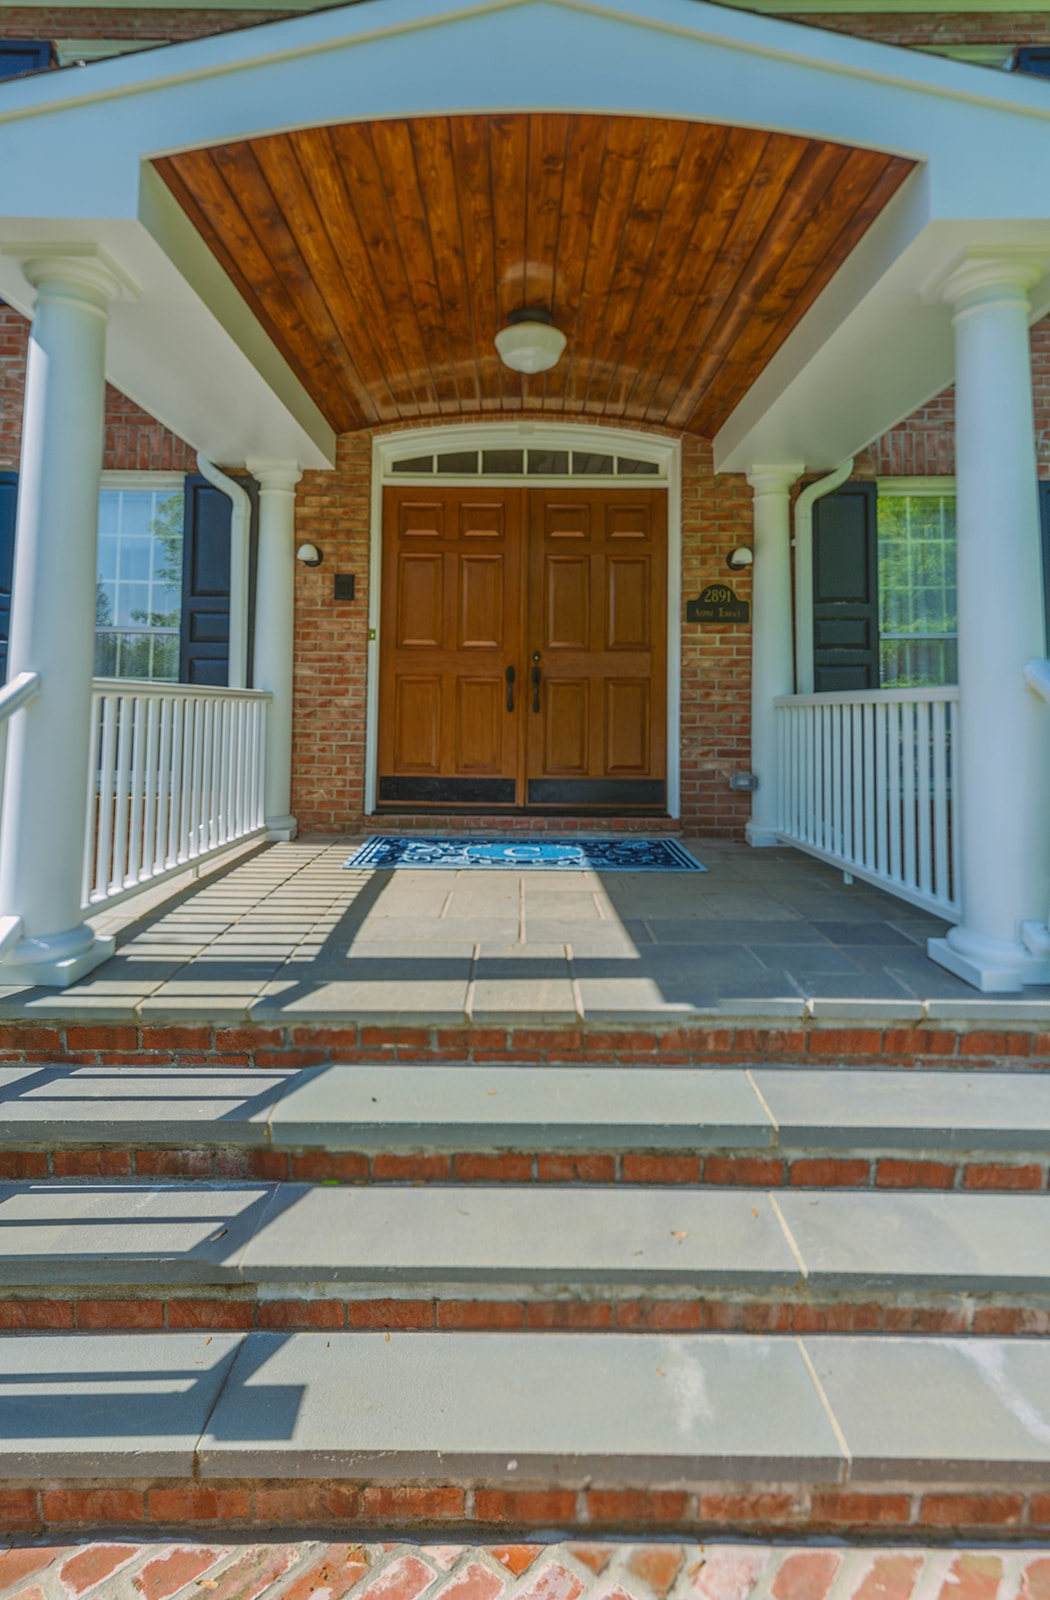 Fine Detail - The crowning glory of this new front porch is the beadboard ceiling, crafted and stained to compliment the existing front door. This fine detail is exquisite, to say the least, adding to the overall polish of the spectacular home.